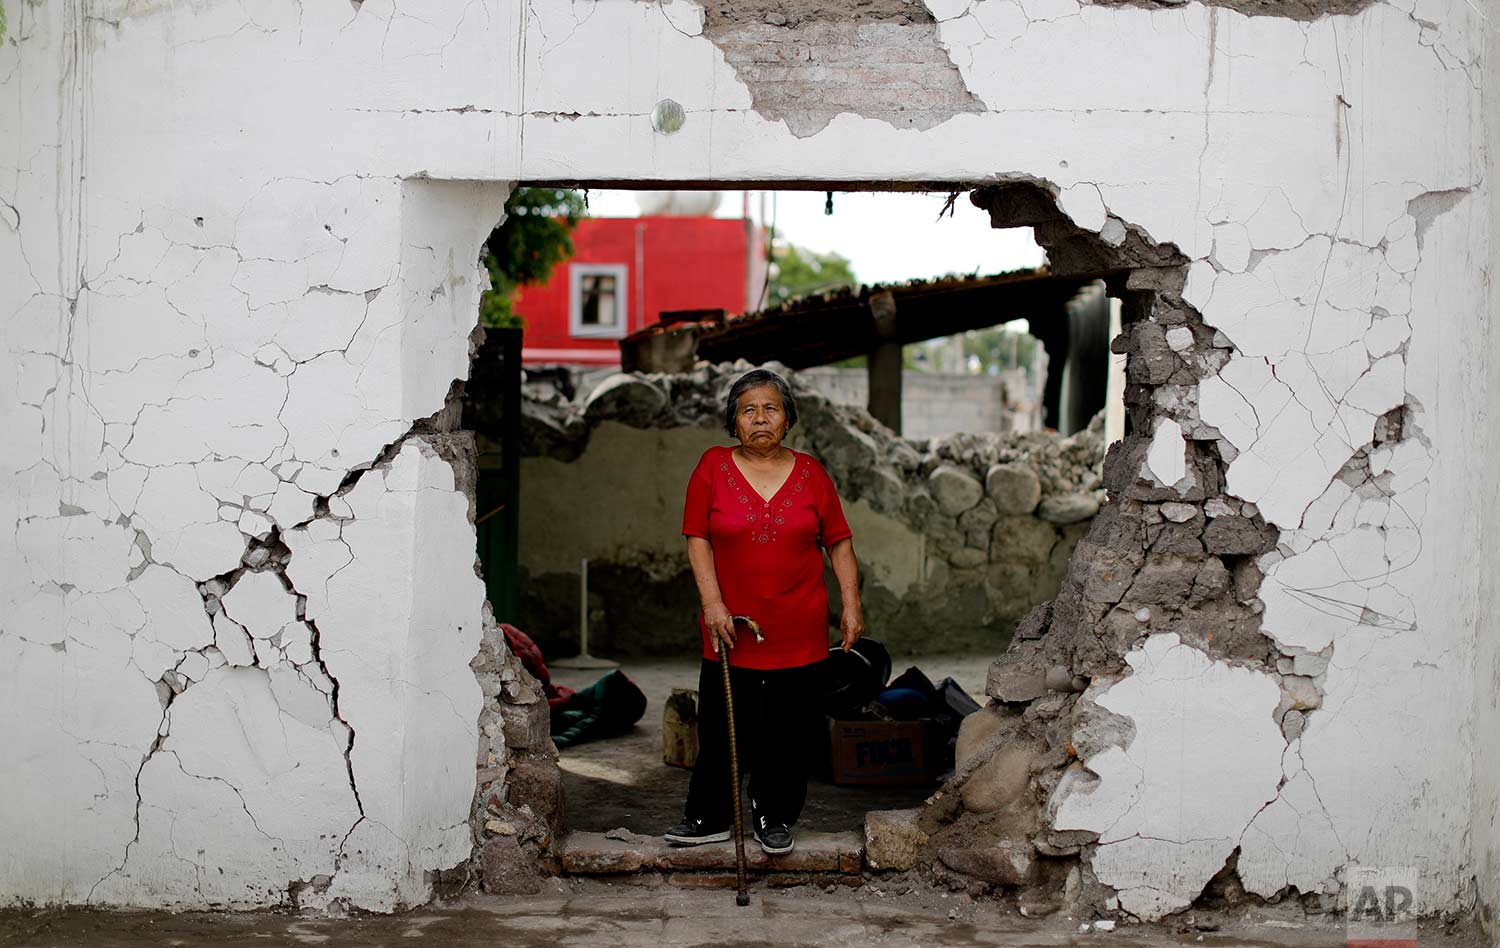 Margarita De La Cruz stands inside her home that was declared condemned after it was damaged by an earthquake,Sept. 23, 2017, Atzala, Mexico. De La Cruz was told by authorities she had to leave her home after the Sept. 19 quake, but the 68-year-old woman said she won't leave because she has spent her entire life there, and has moved into a tiny room that works as a kitchen in the garden. (AP Photo/Natacha Pisarenko)